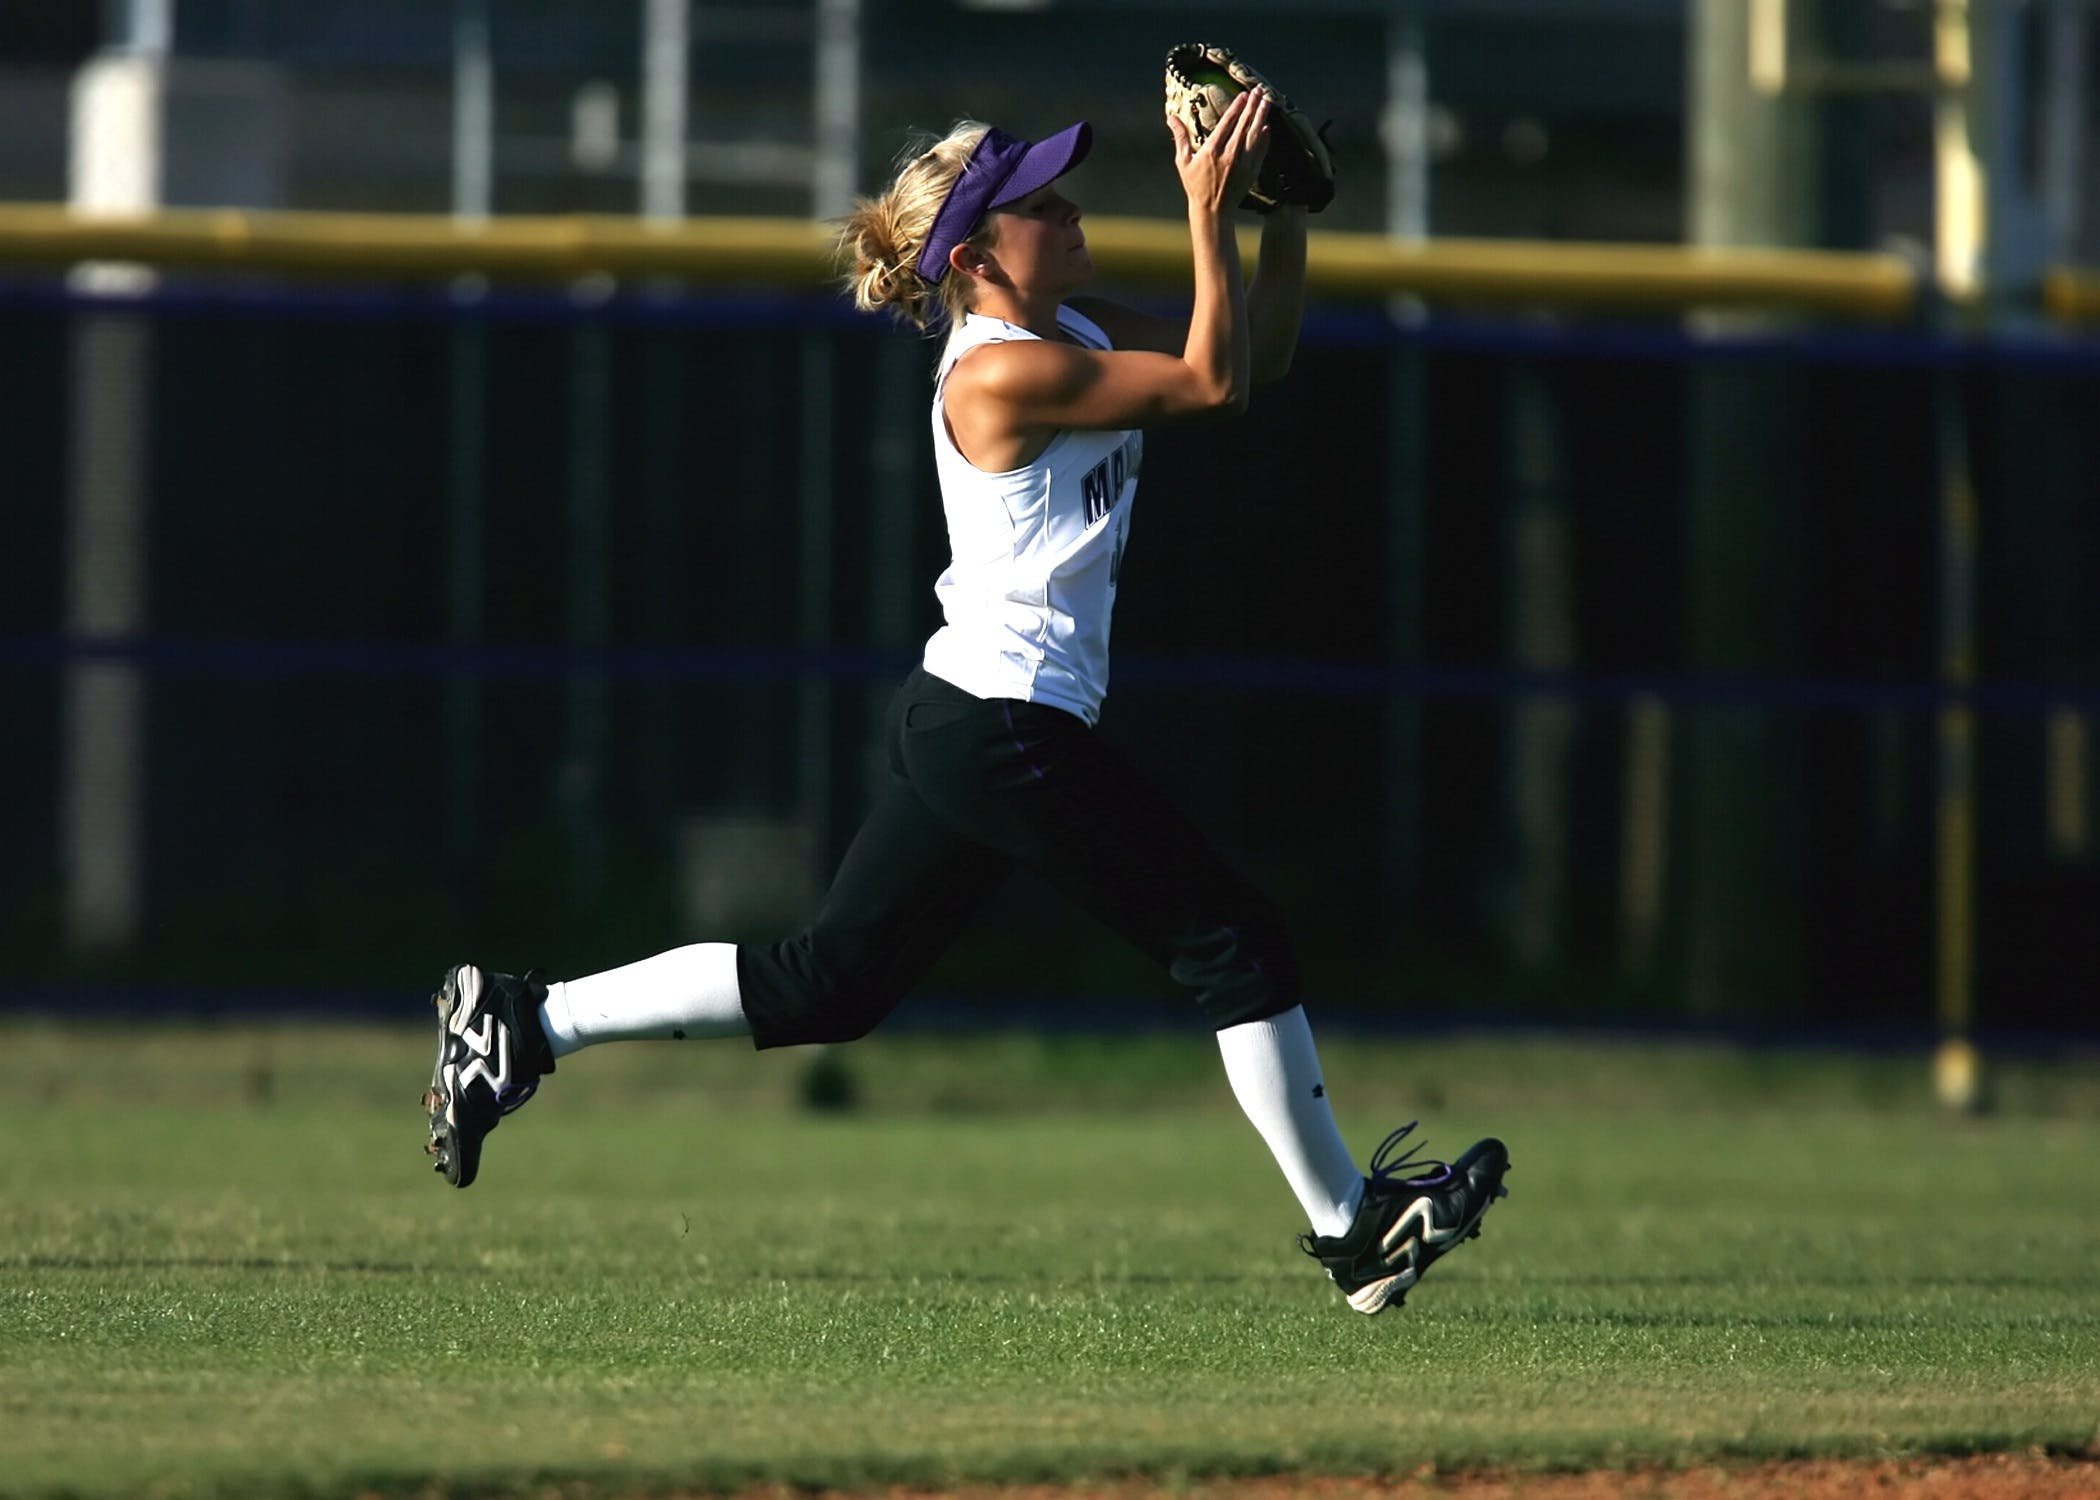 Woman in White Sleeveless Shirt Playing Softball